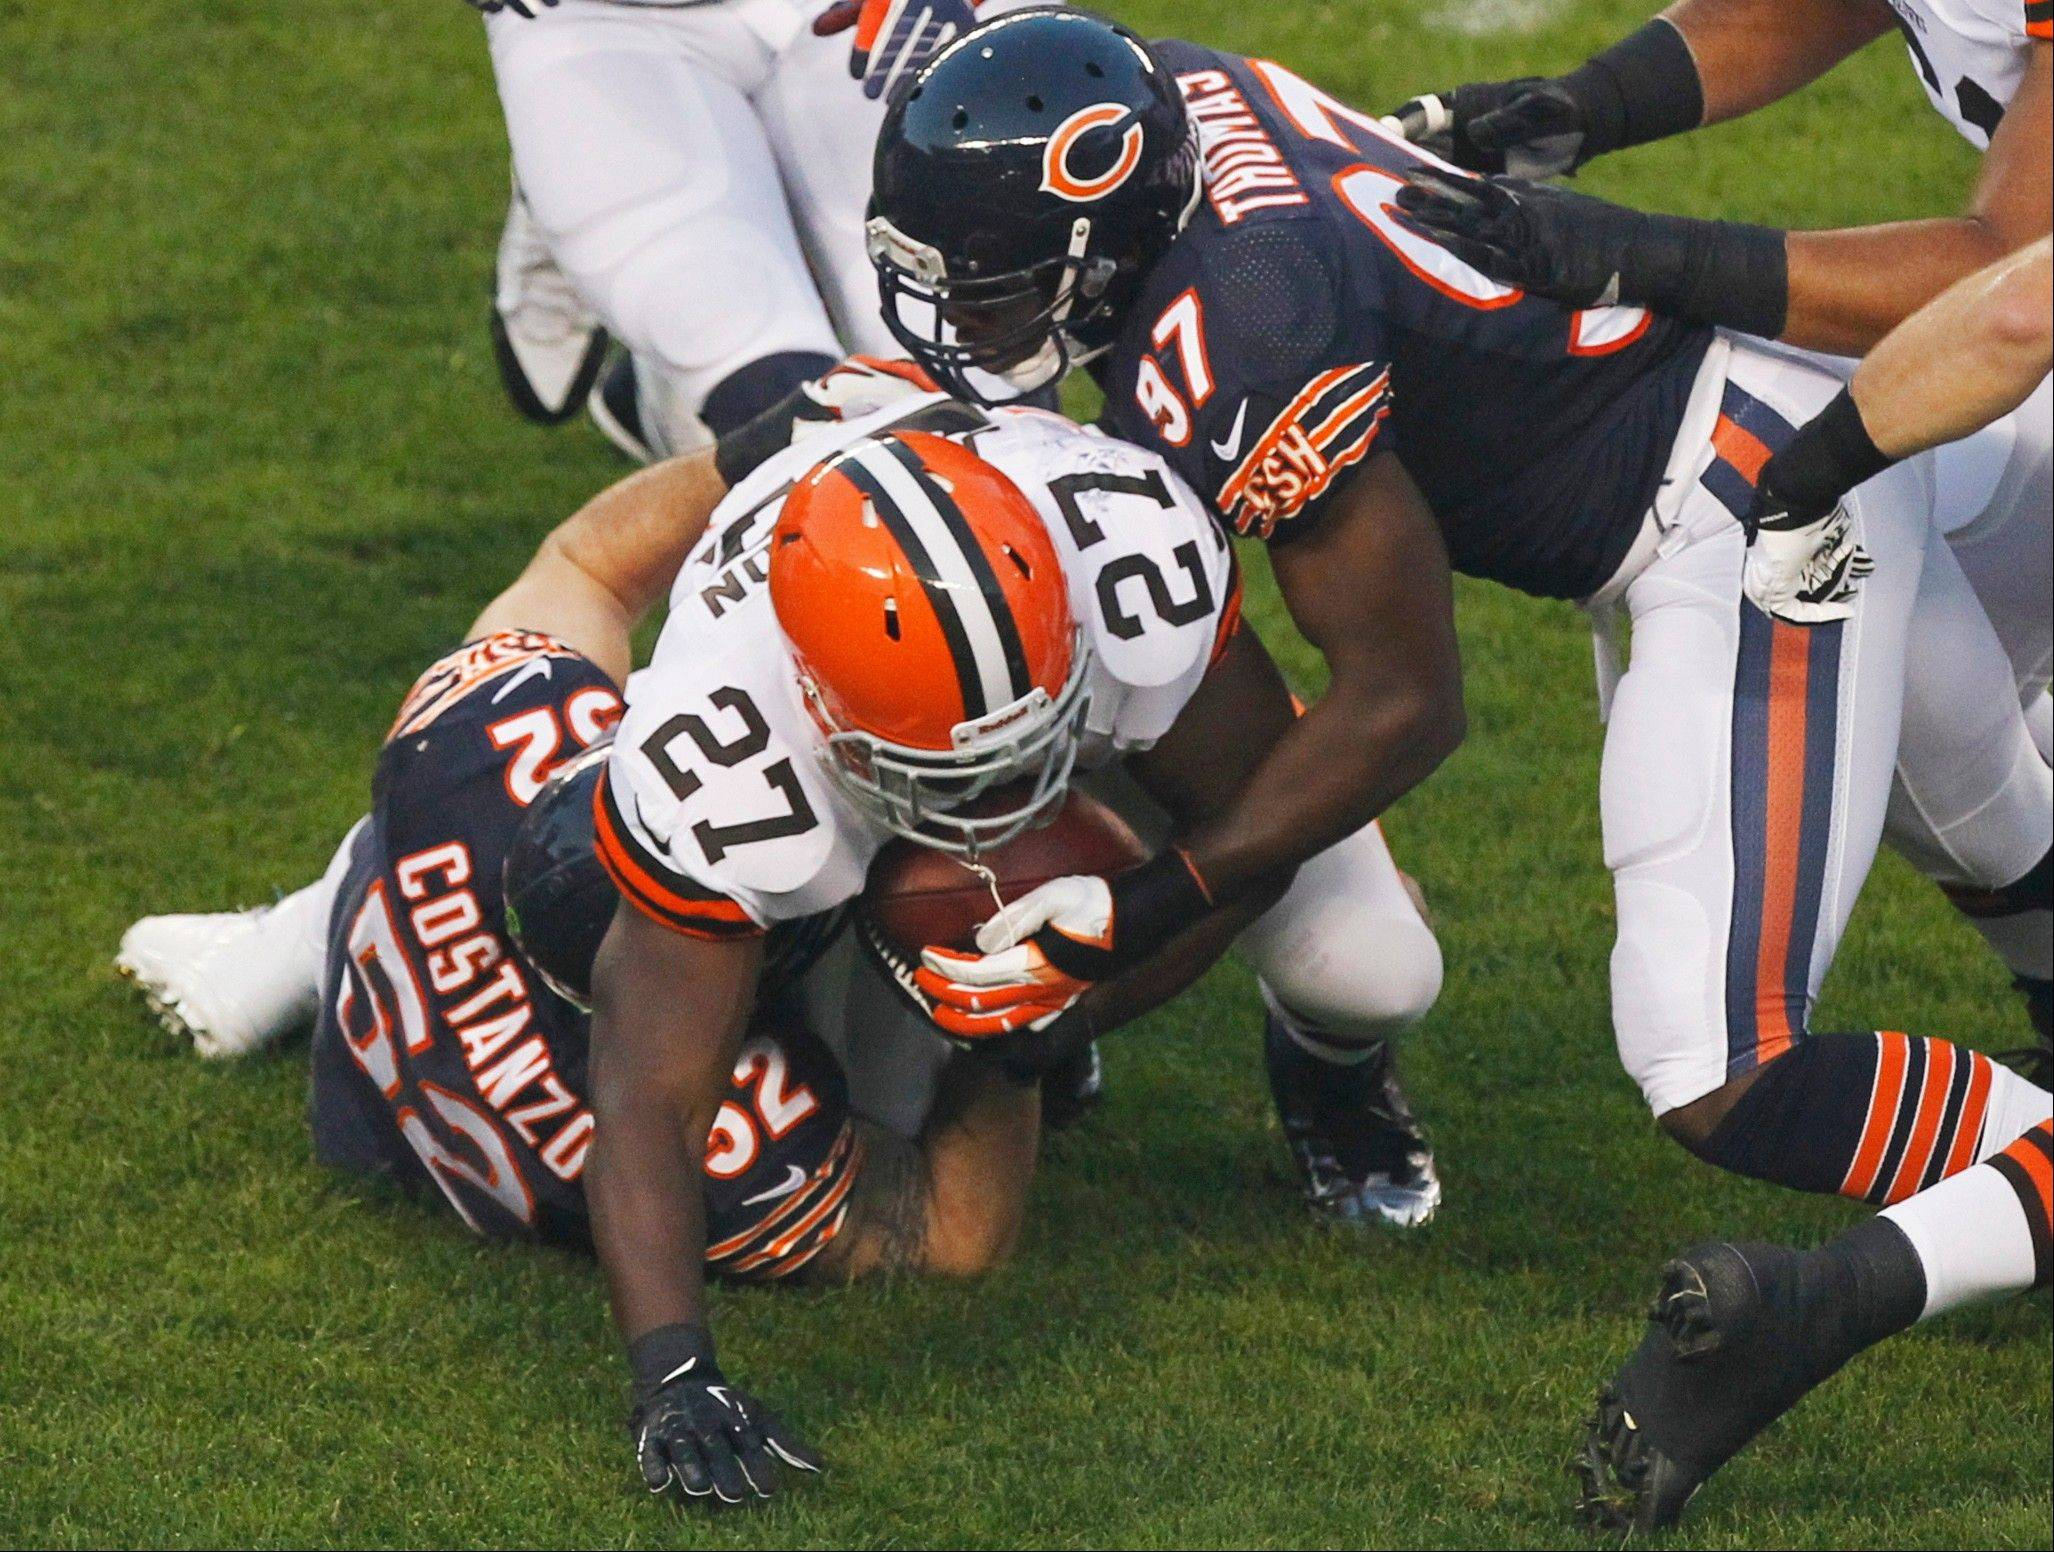 Bears linebackers Blake Costanzo (52) and J.T. Thomas stop Browns running back Brandon Jackson during preseason action Thursday at Soldier Field.